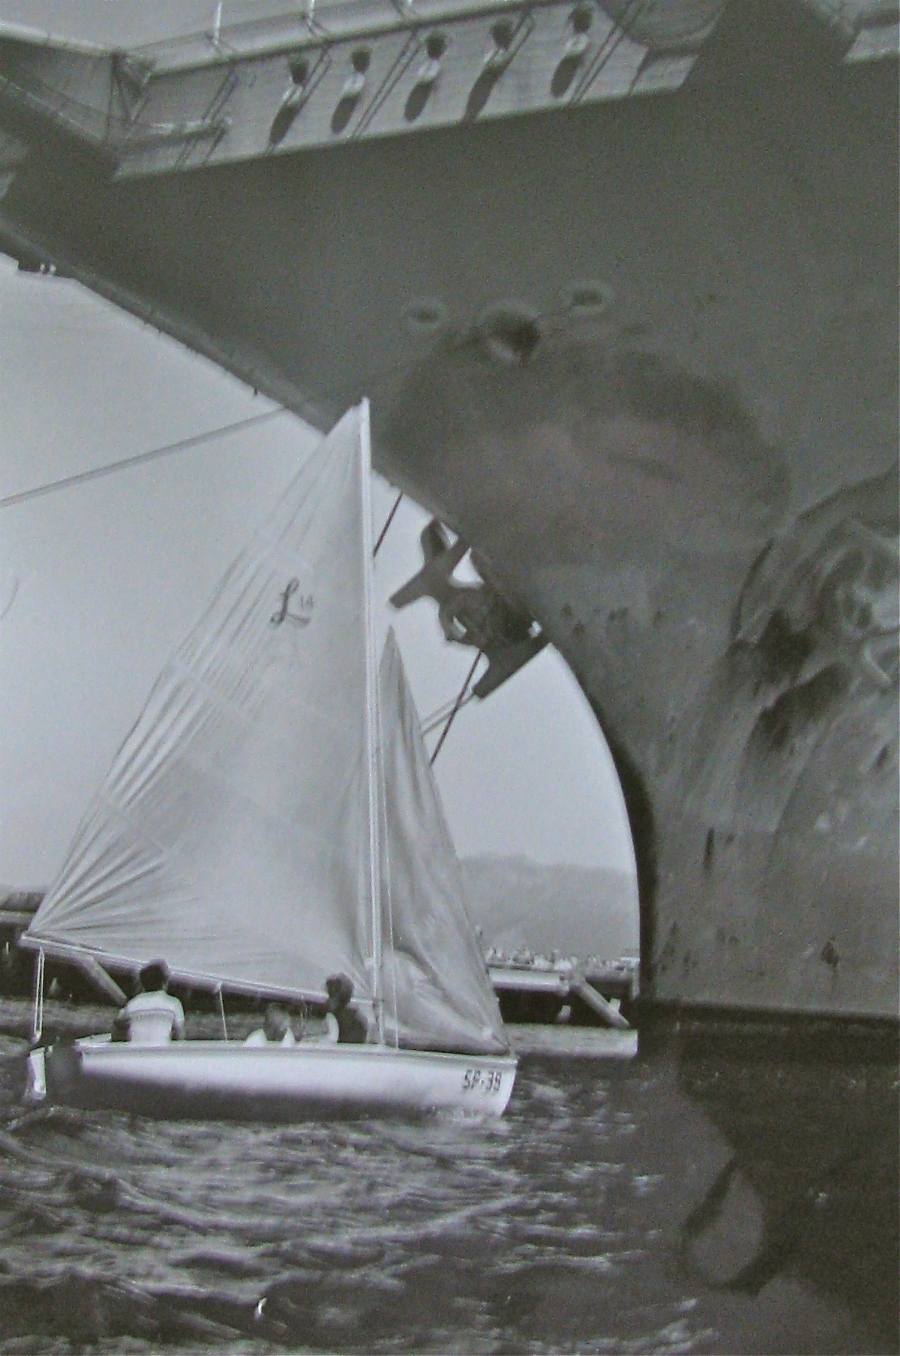 Hyde and his wife, Linda, sail under the bow of a giant aircraft carrier moored at Subic Bay in the Philippines. This is where the Naval officer learned to sail on this 14 Lido Class sloop. Photo provided